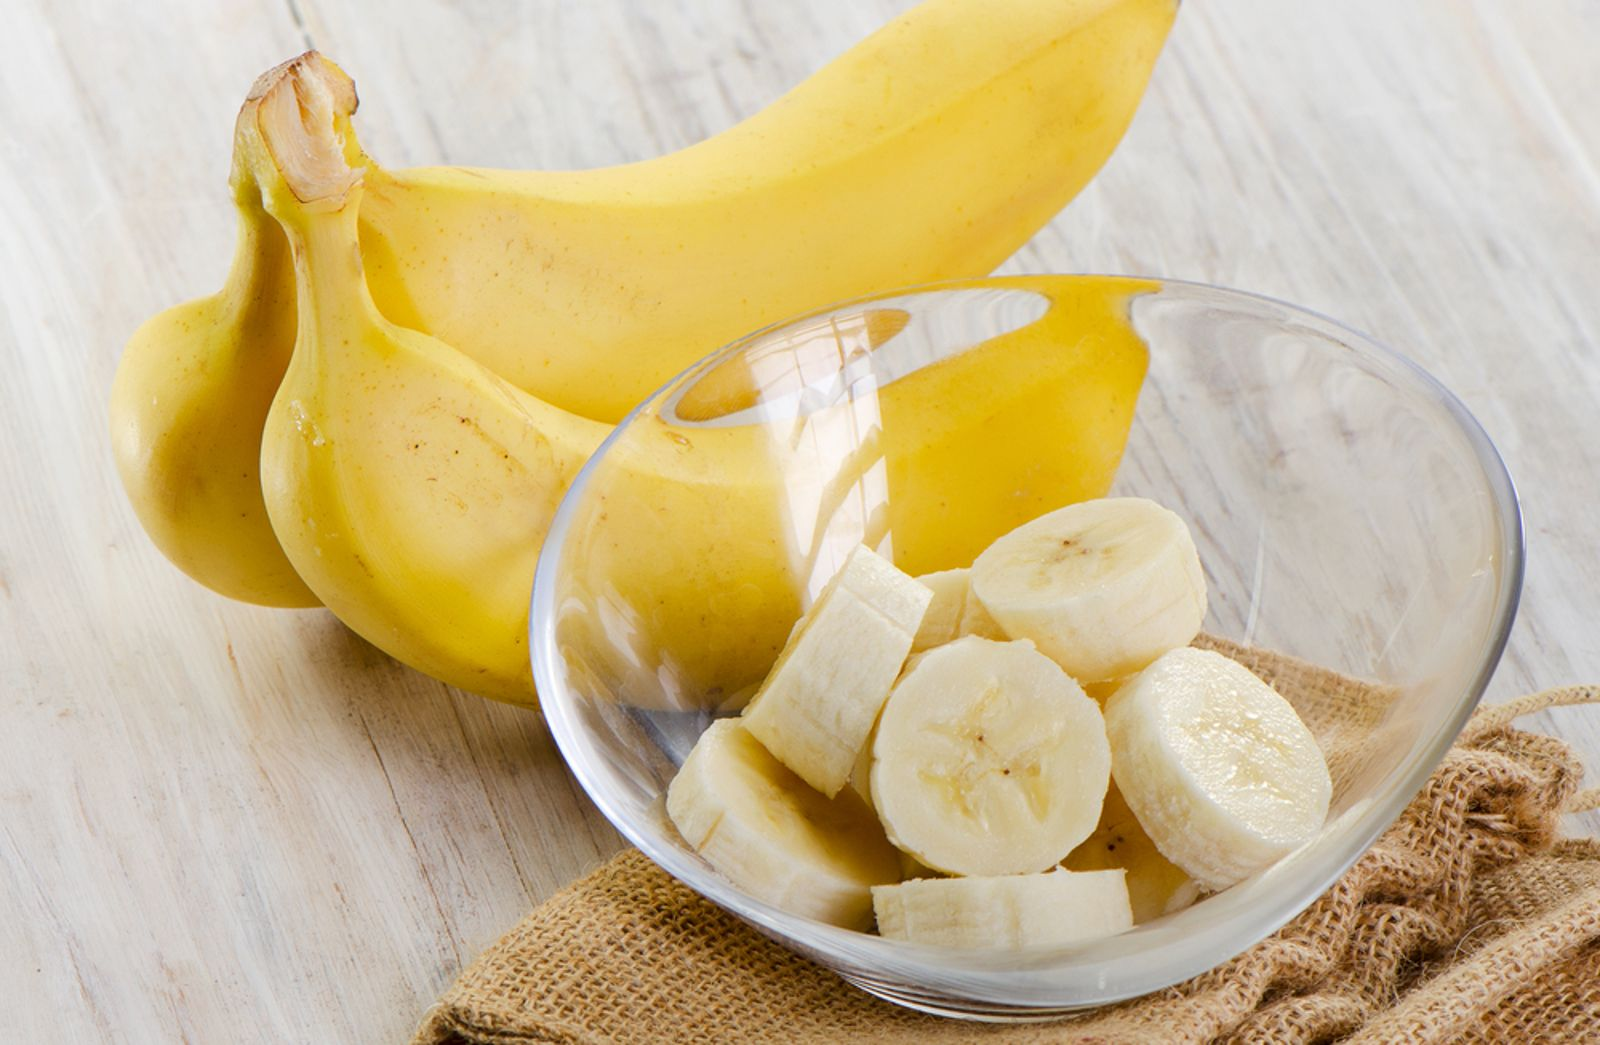 Photo of Sleep Tea, Conditioner, and Teeth Whitening: 7 Surprising Ways You Can Use Bananas